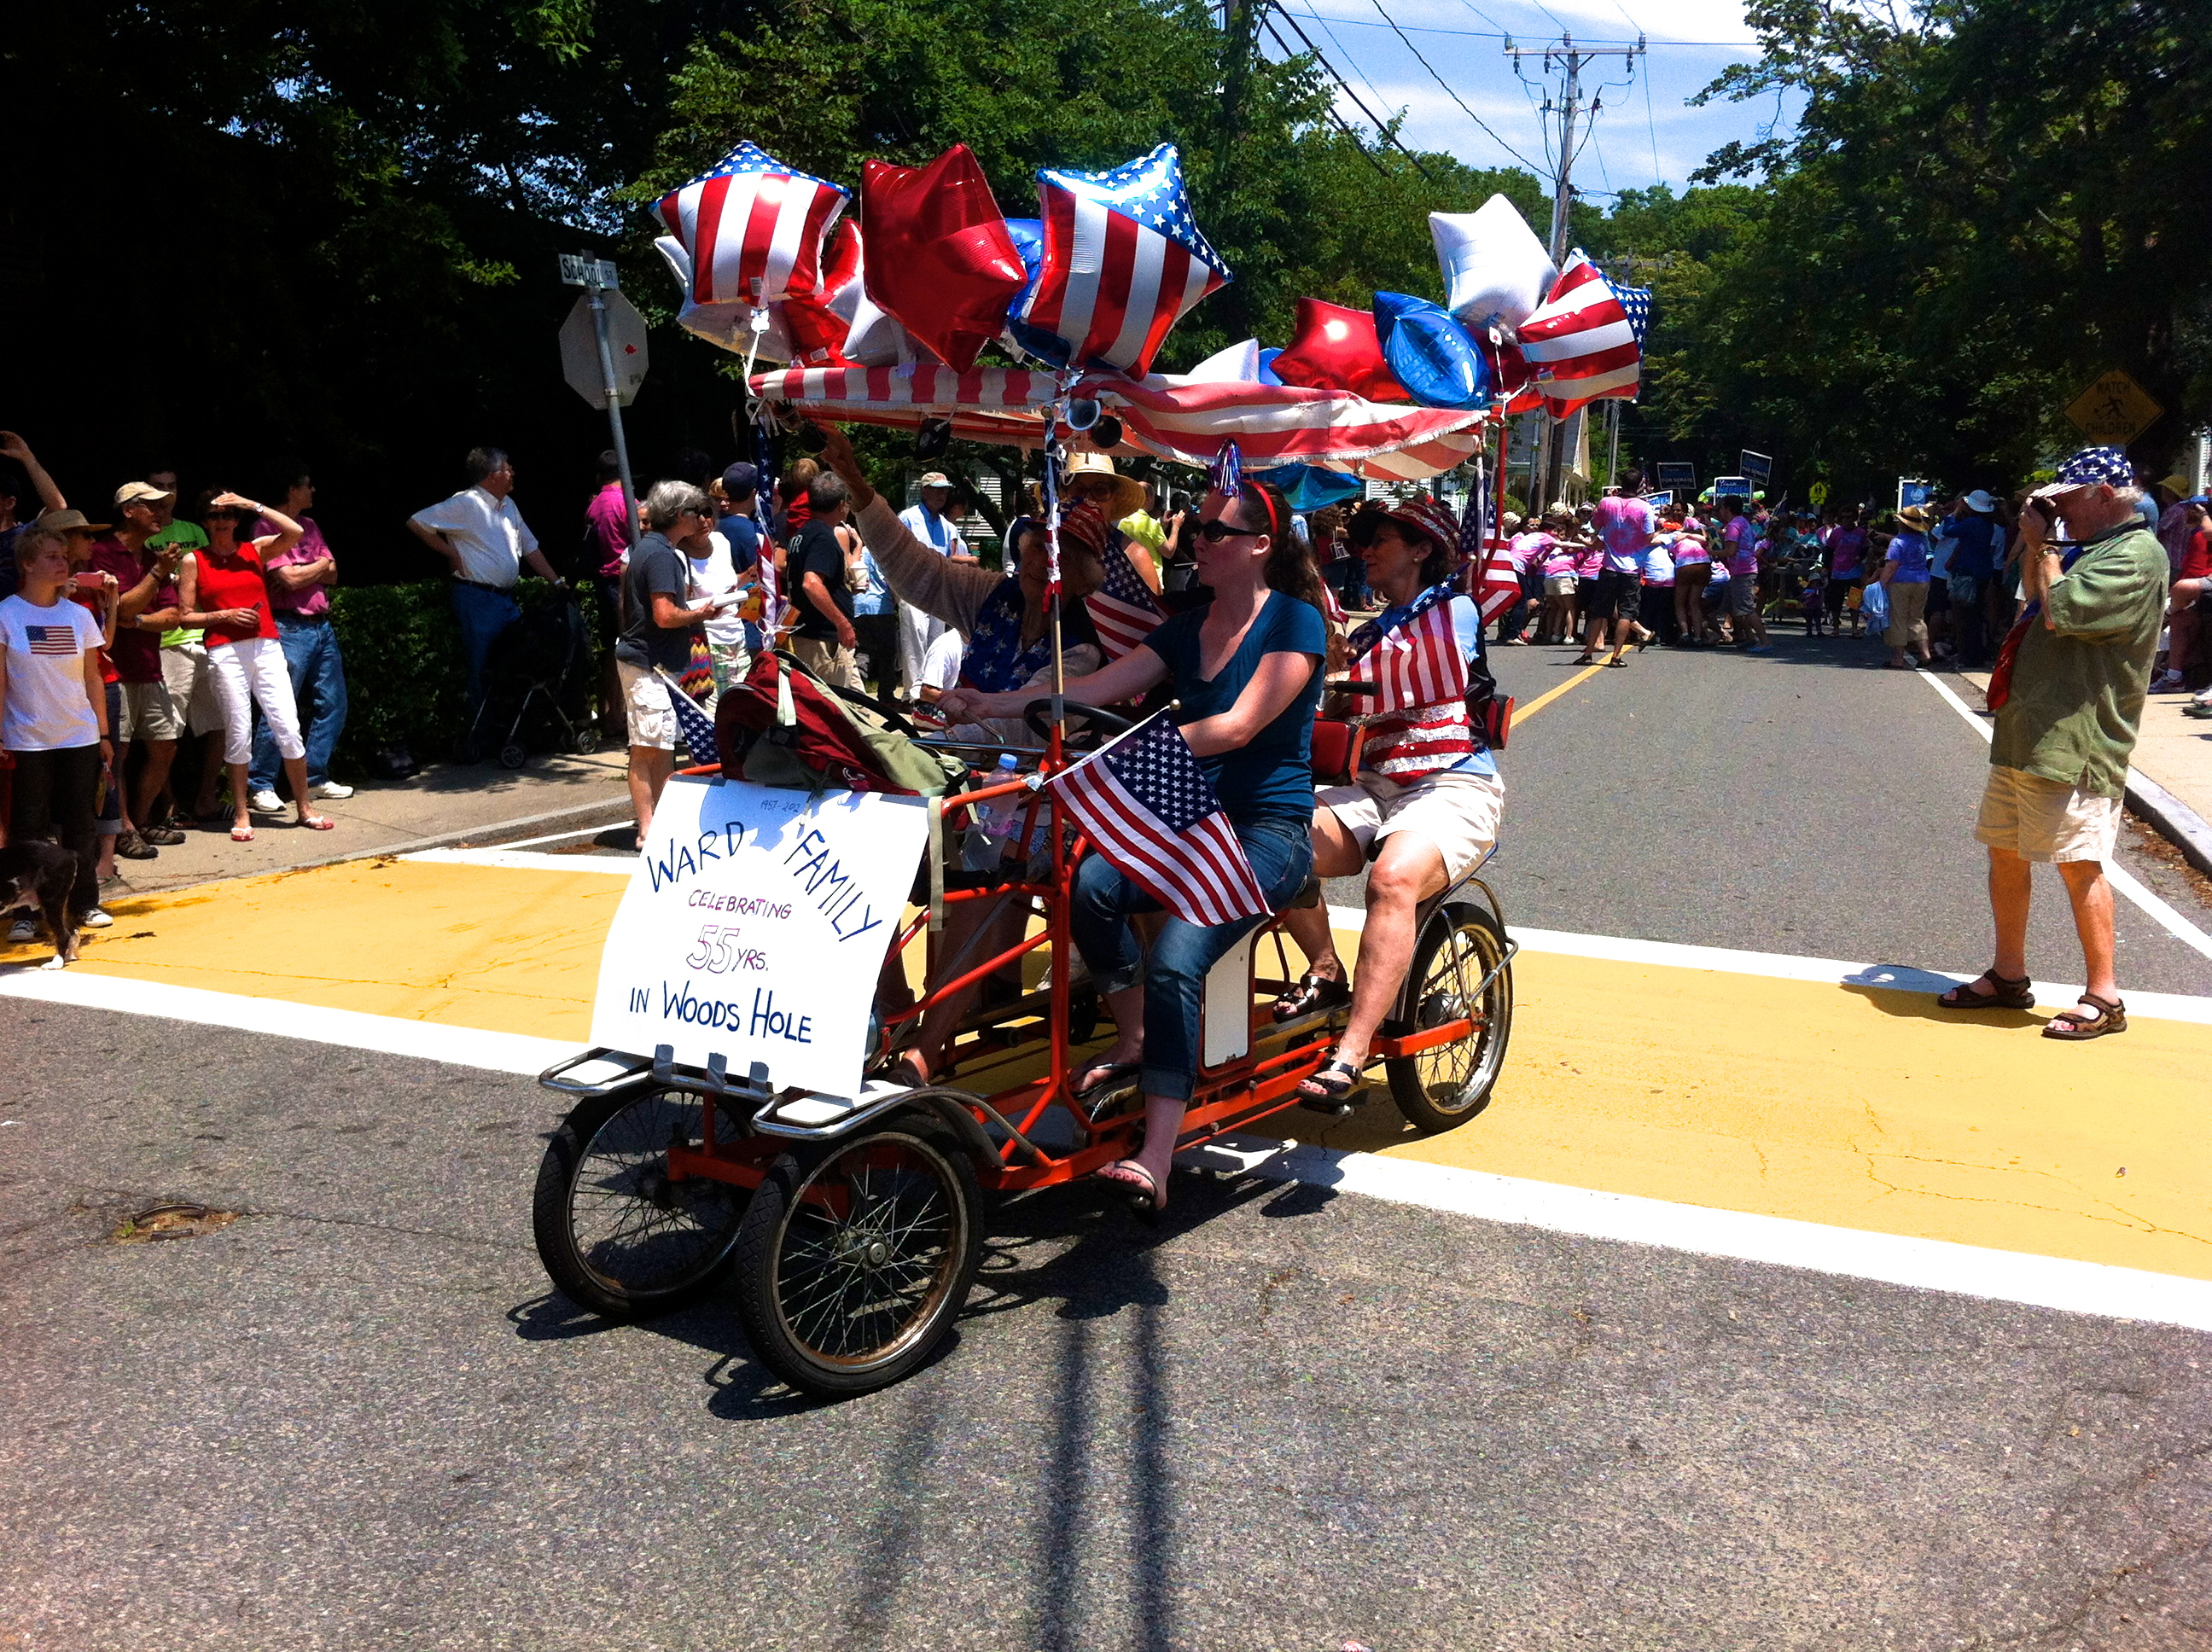 Cape Cod family at the Fourth of July parade.